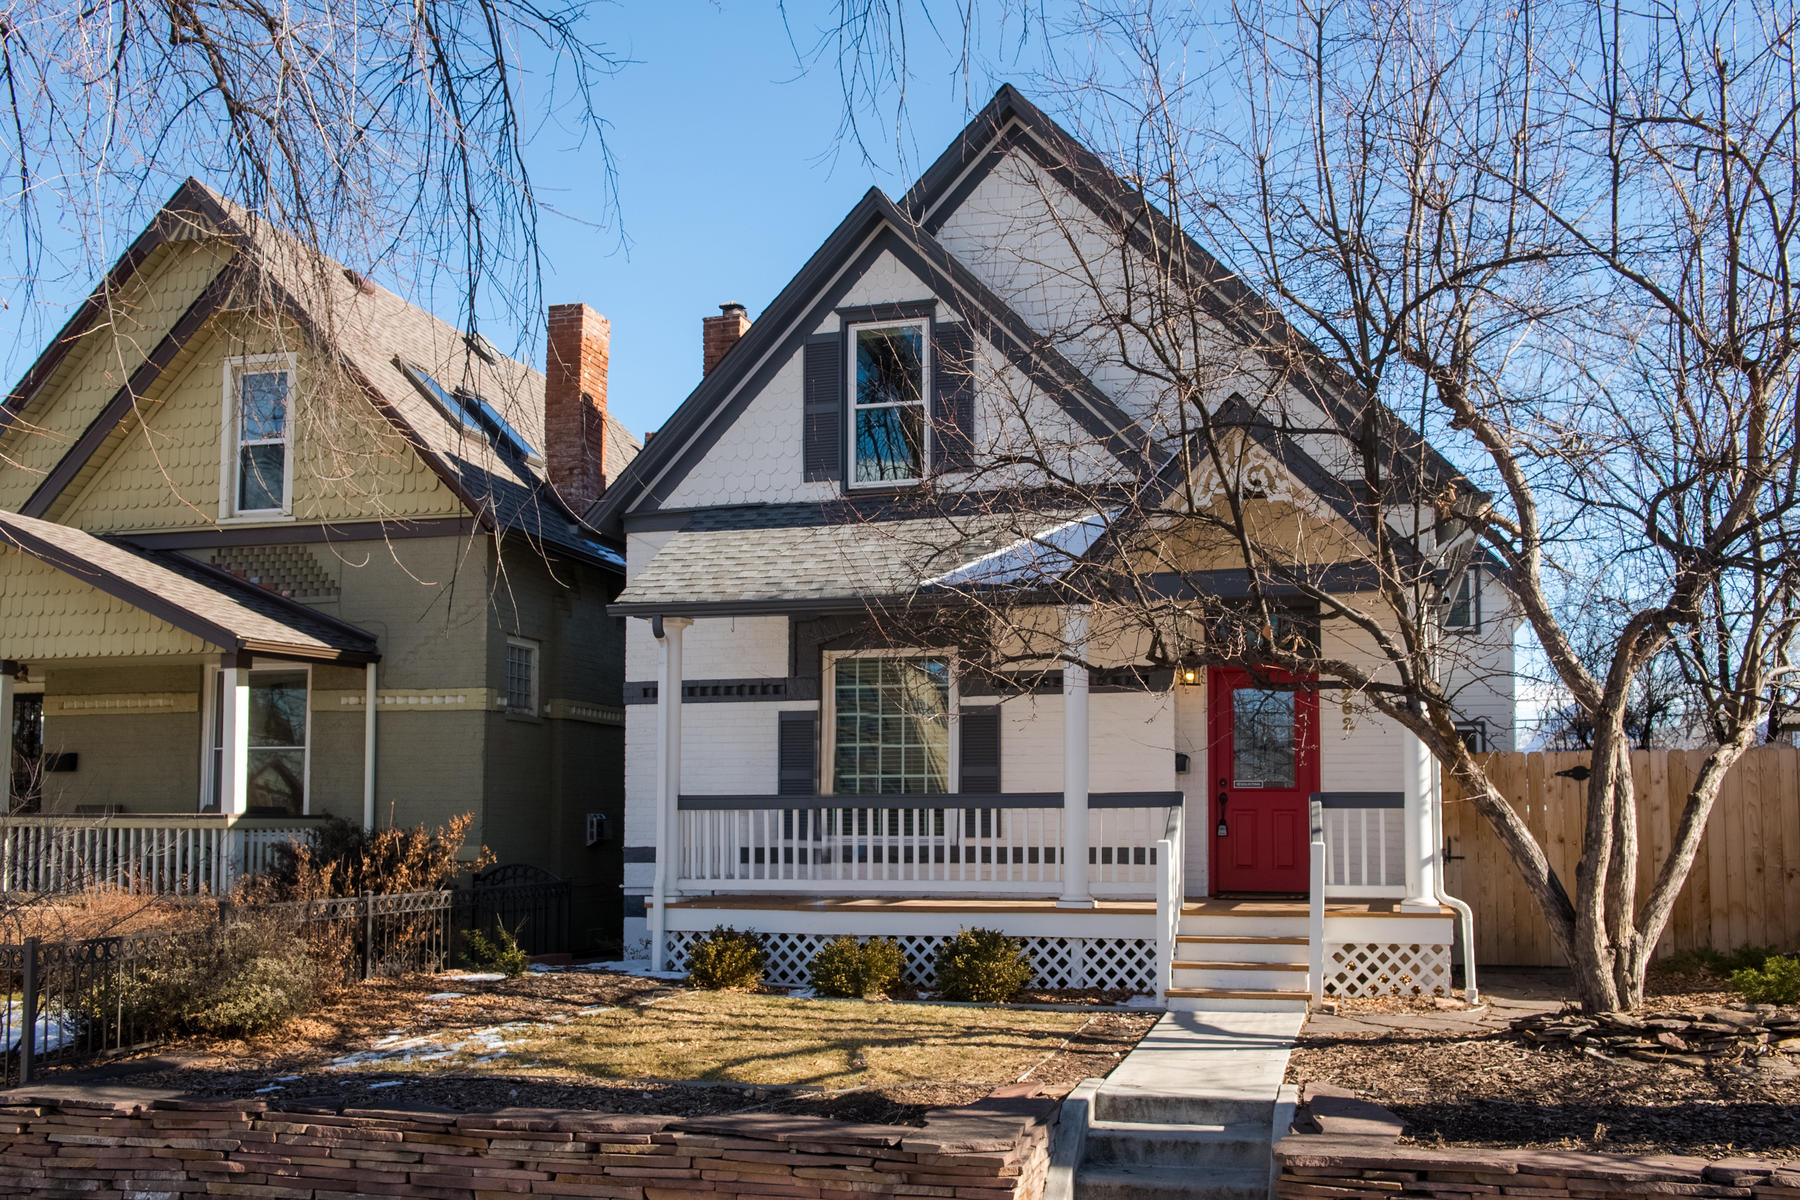 Single Family Home for Active at This Classic Home Has Original Charm with all of the Modern Day Updates 3262 Newton St Denver, Colorado 80211 United States